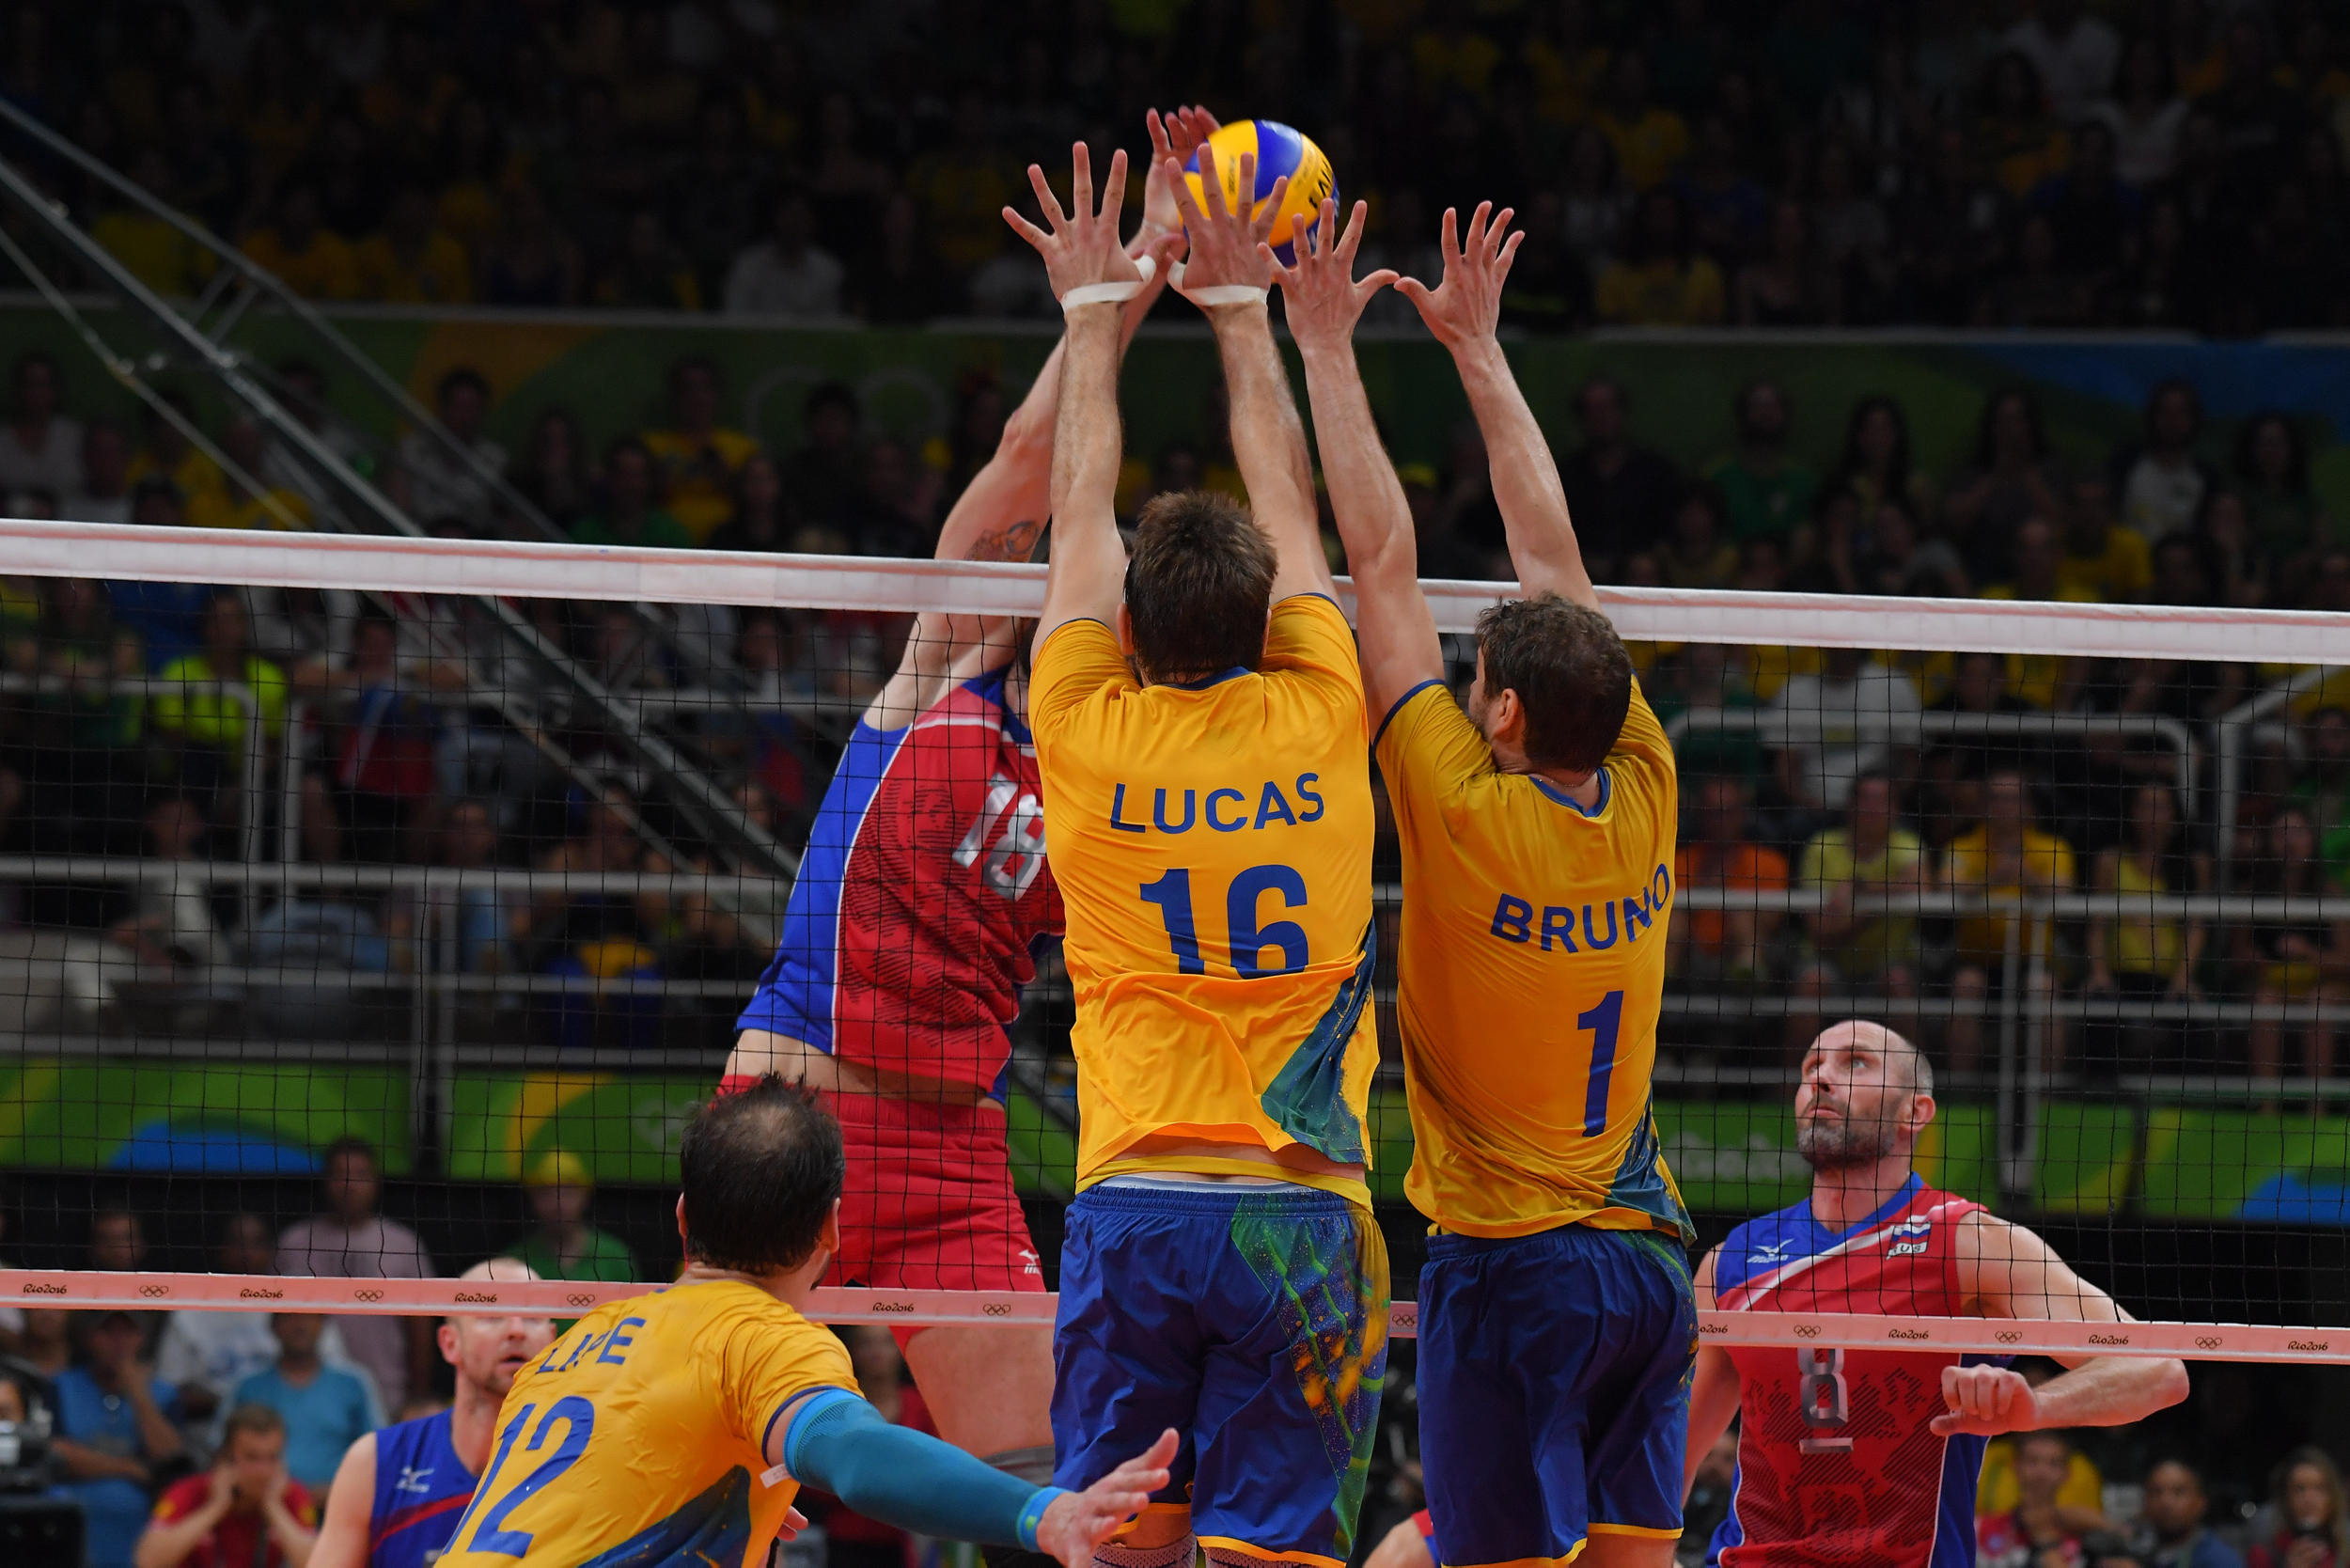 http://www.fivb.org/Vis2009/Images/GetImage.asmx?No=201653513&maxSize=960